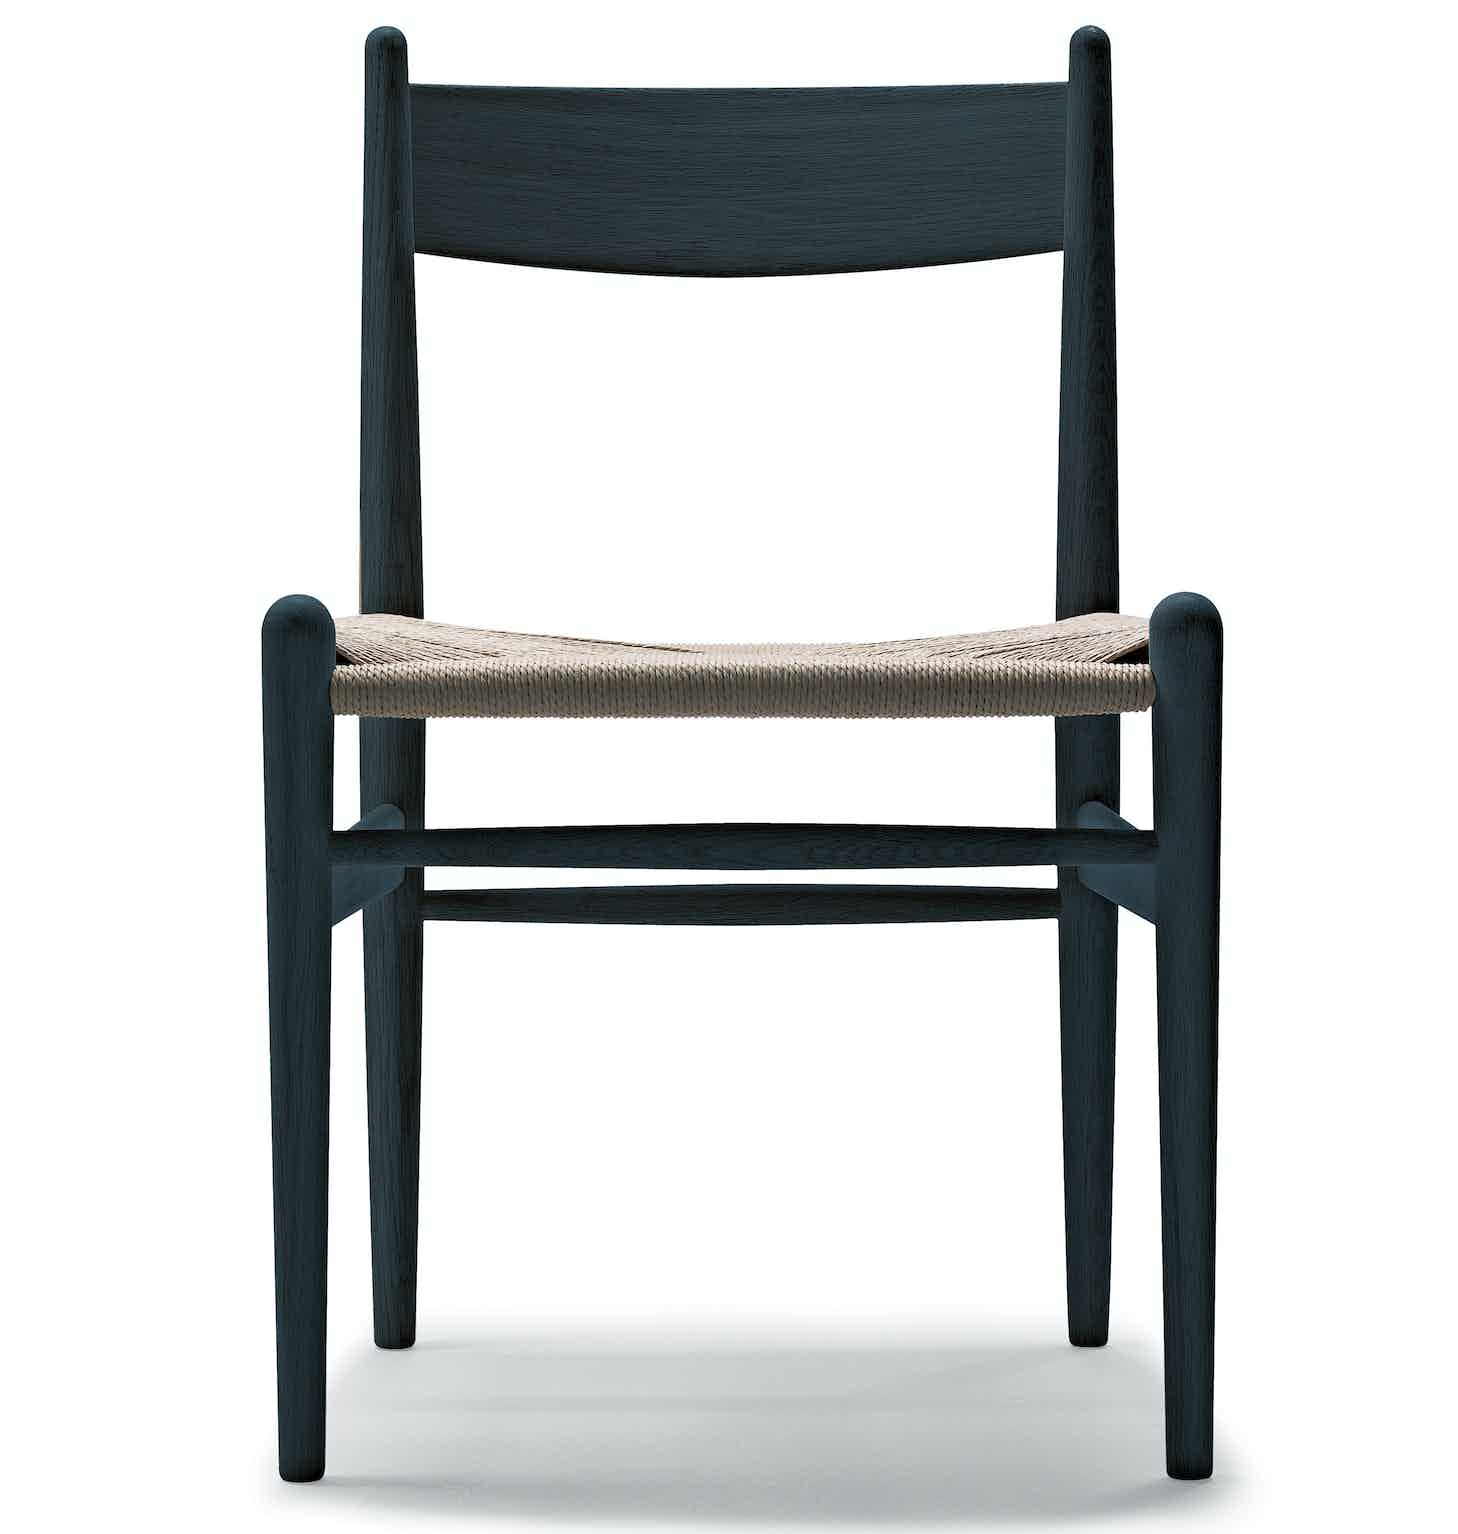 Carl-hansen-son-front-black-ch36-haute-living